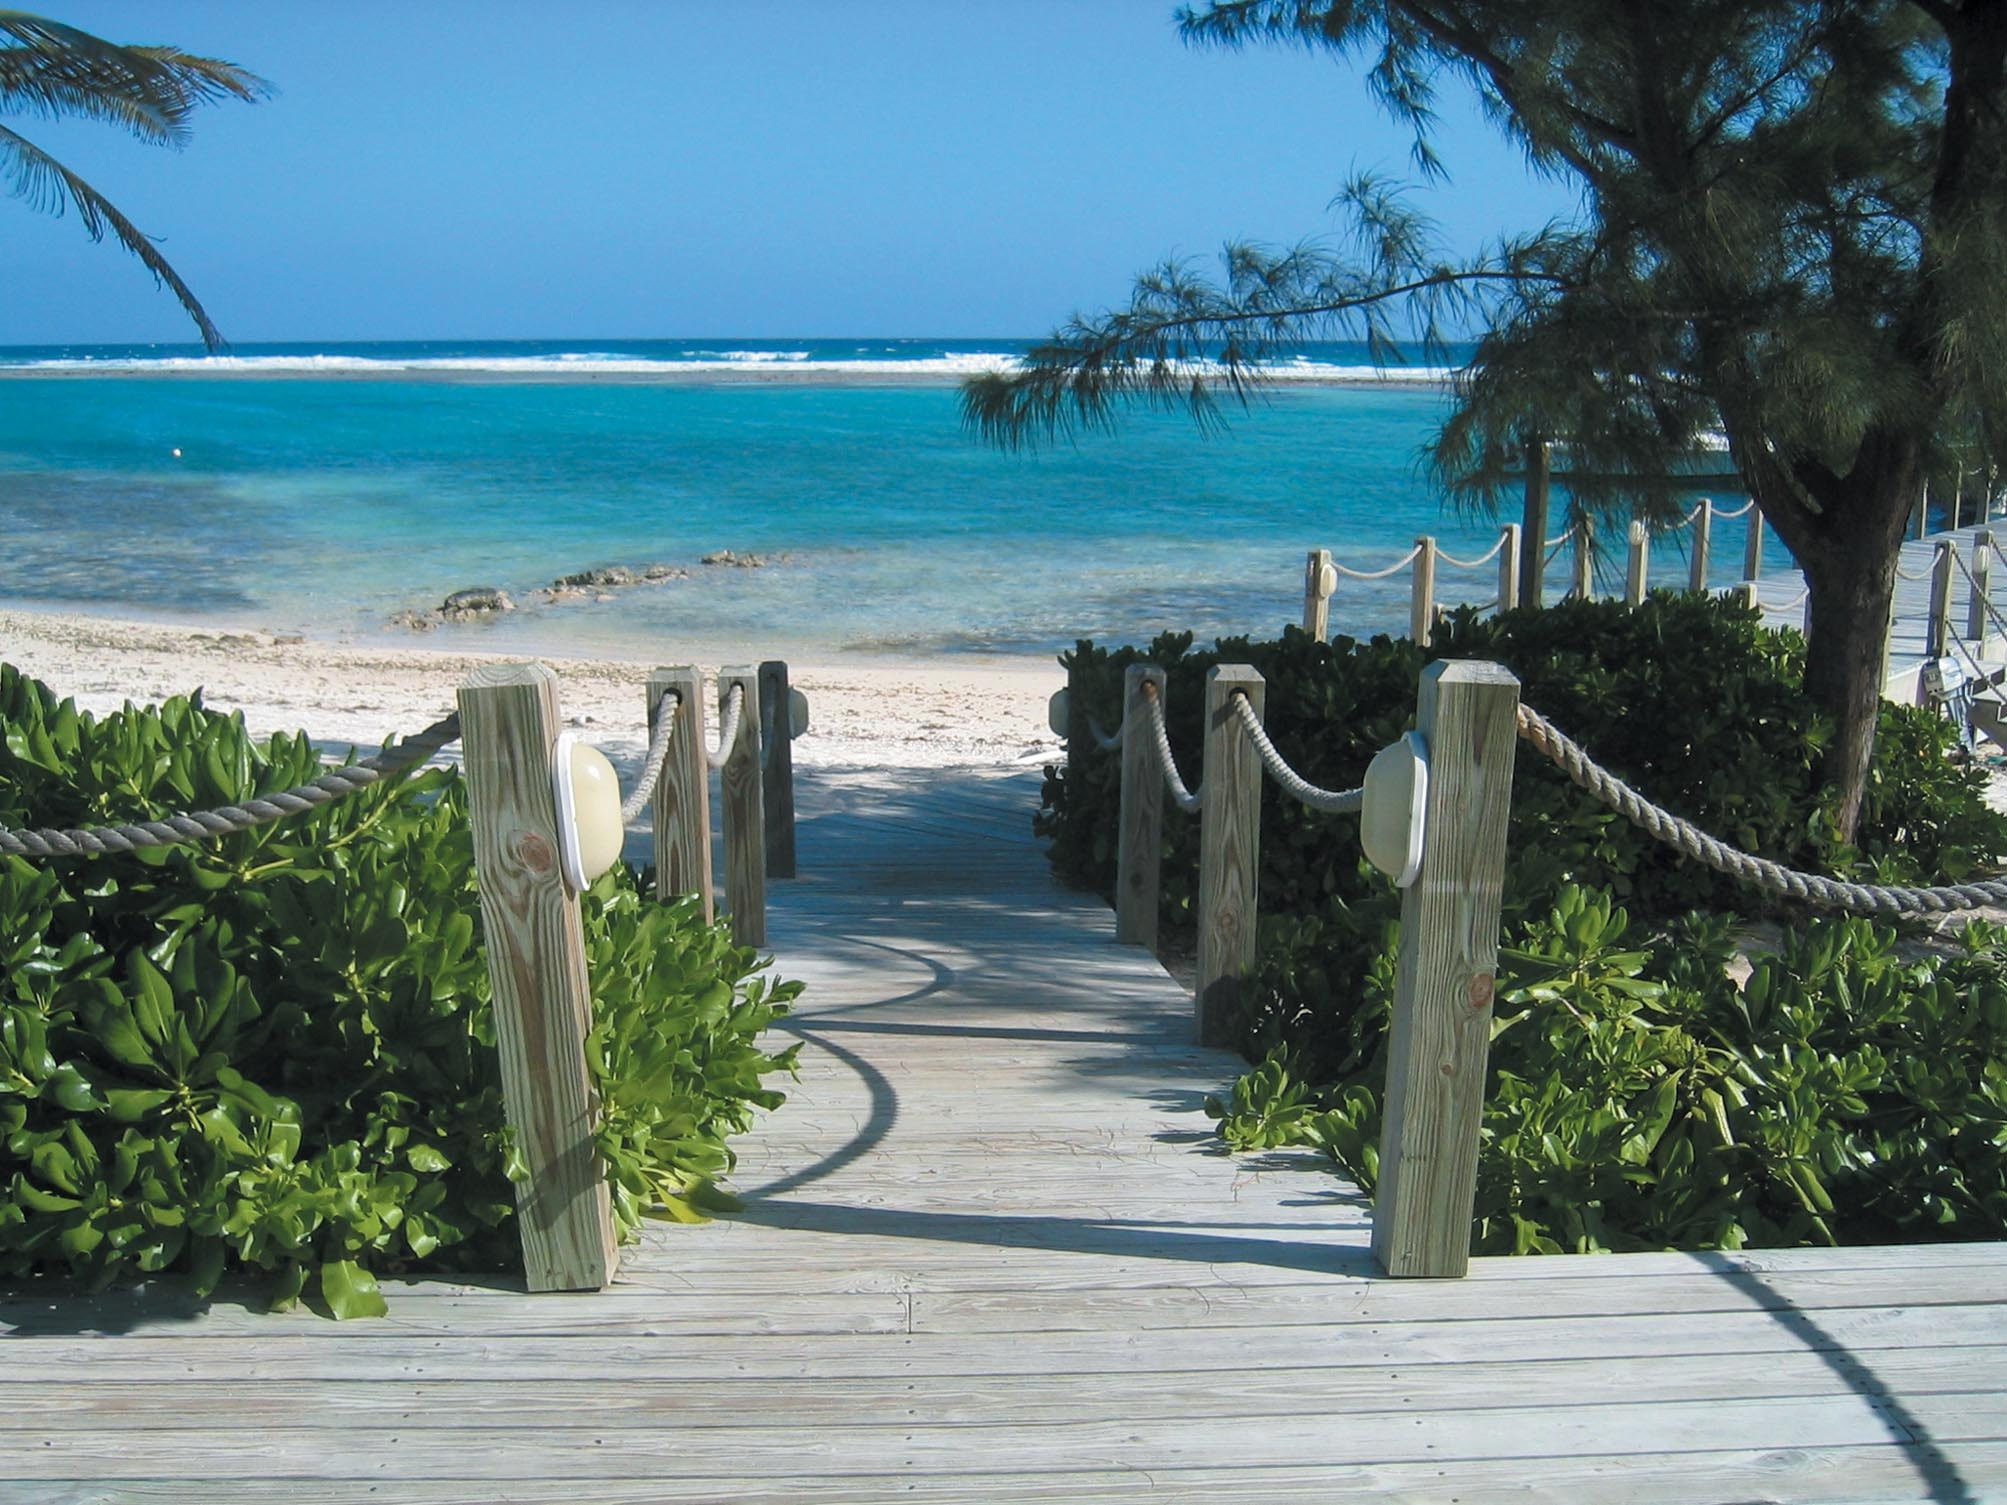 Paradise Also Known As Cayman Brac Sister Islands Cayman Islands